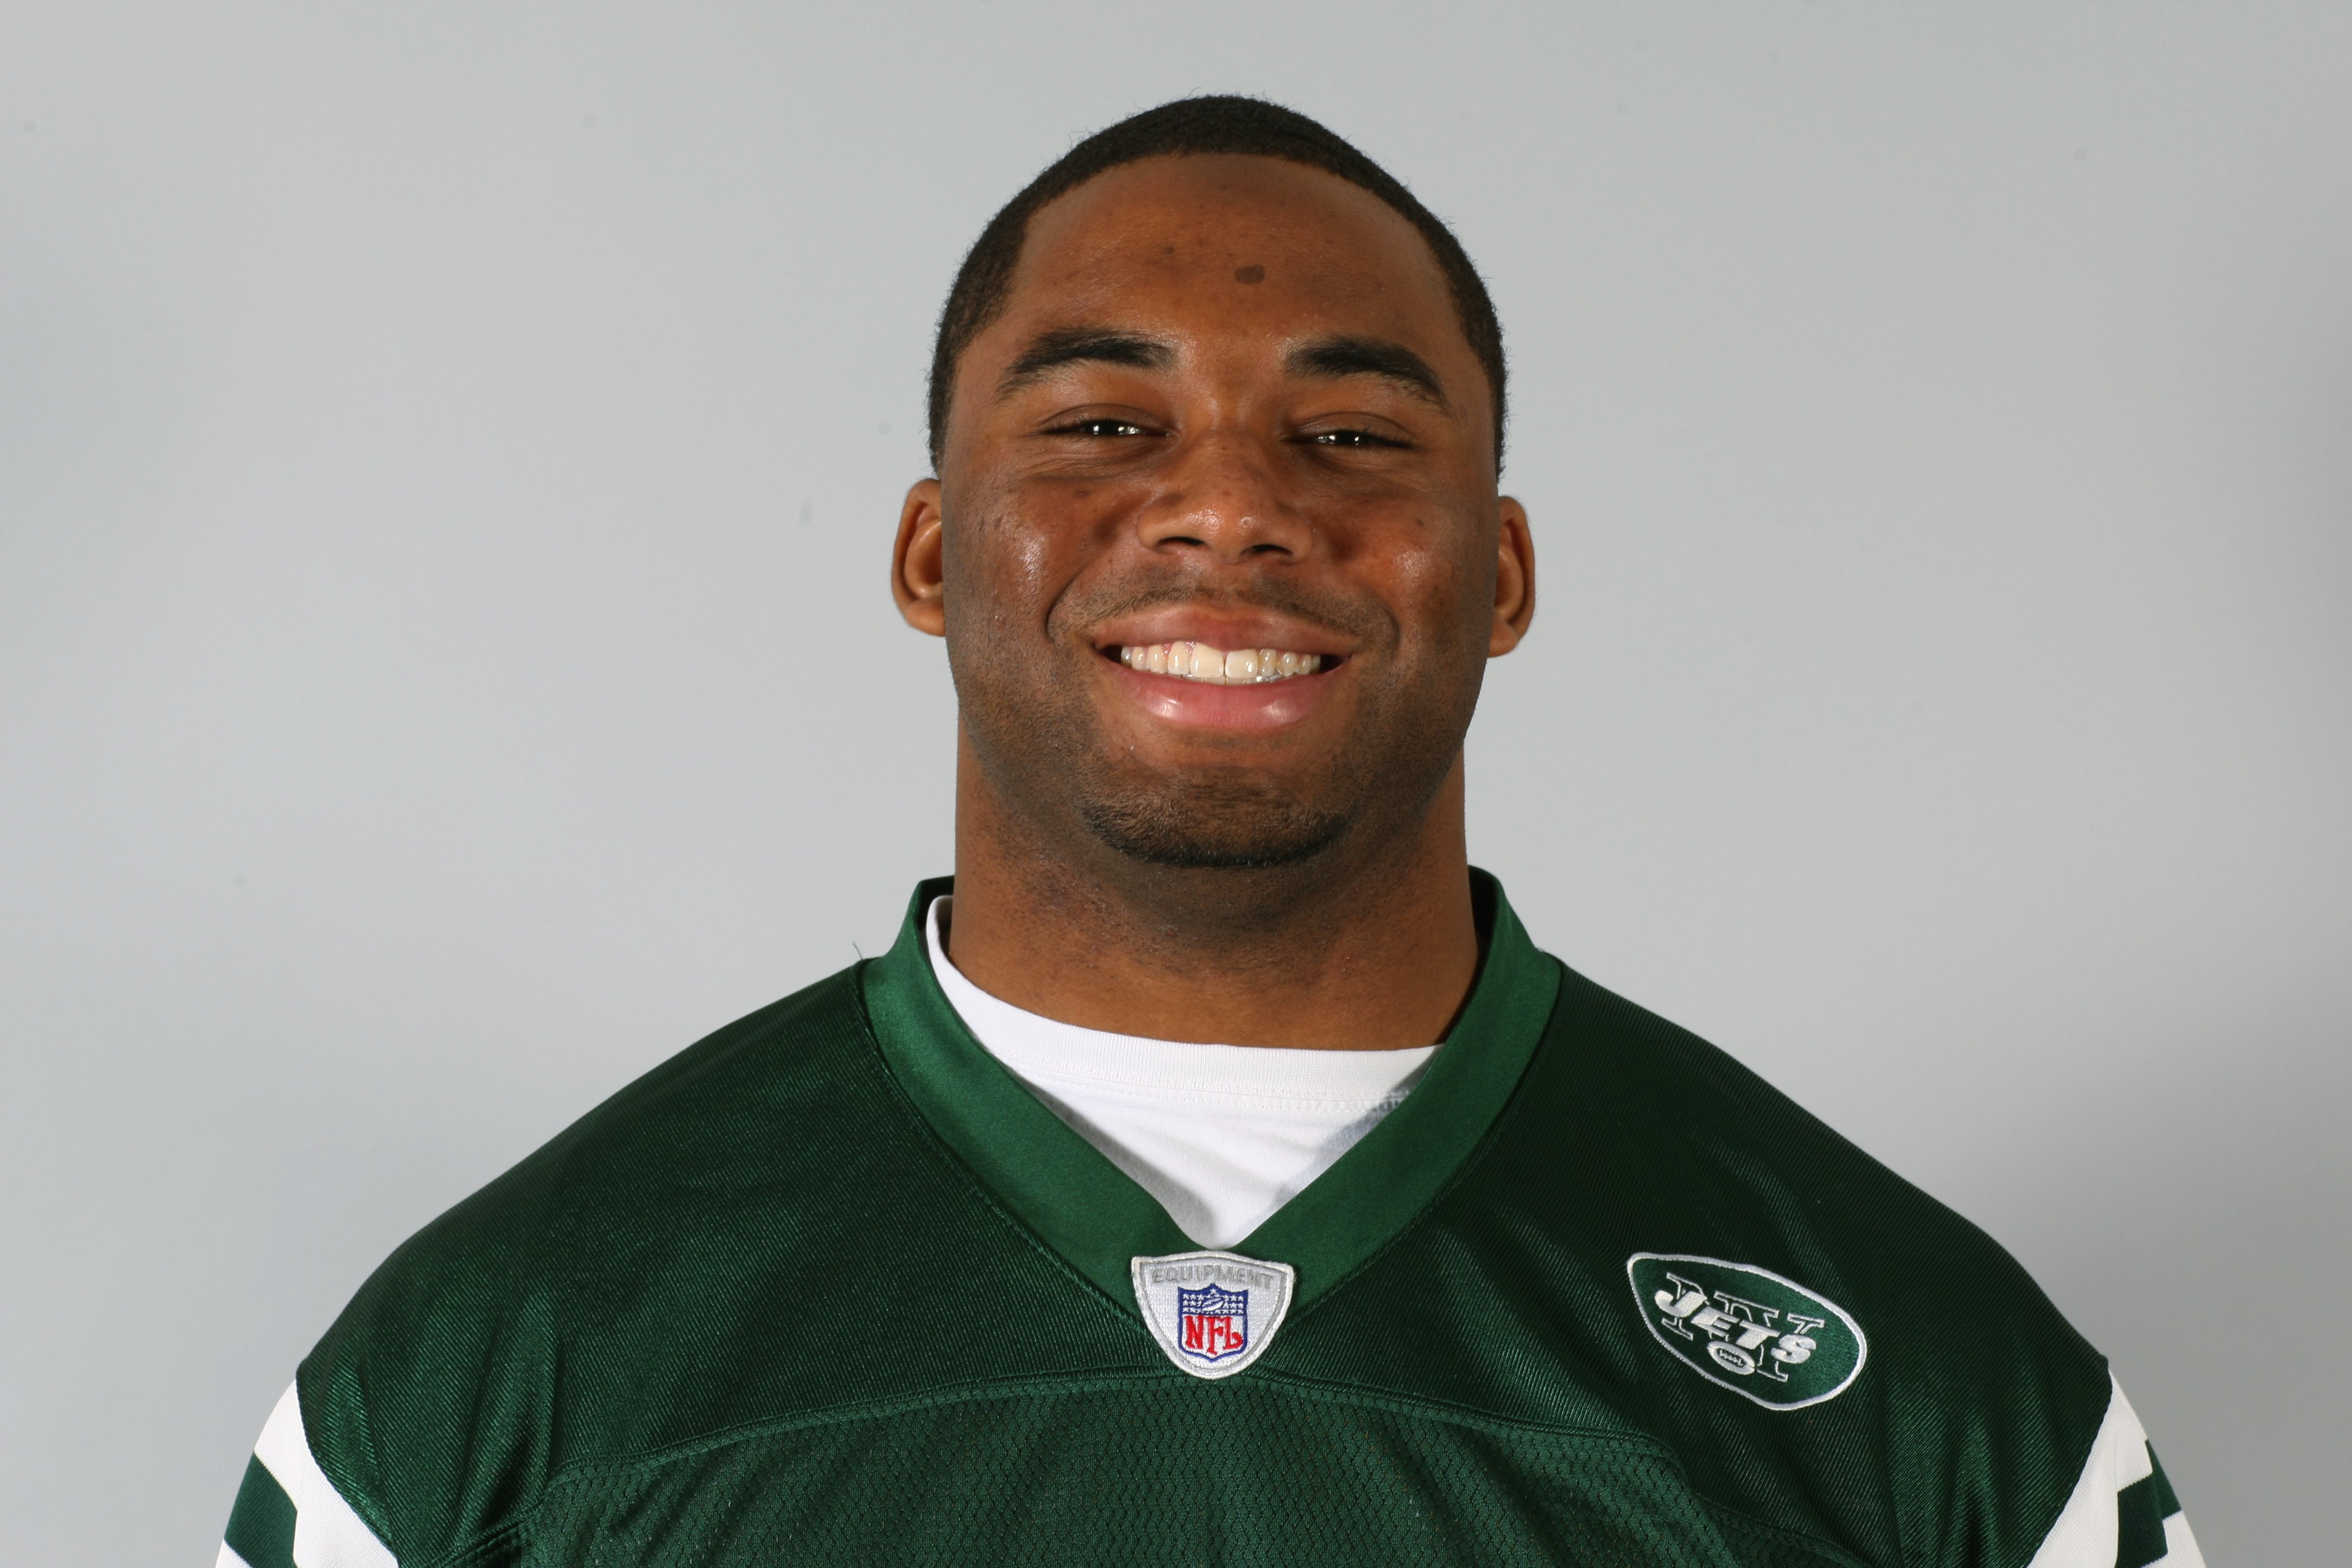 EAST RUTHERFORD, NJ - 2009:  Vernon Gholston of the New York Jets poses for his 2009 NFL headshot at photo day in East Rutherford, New Jersey.  (Photo by NFL Photos)